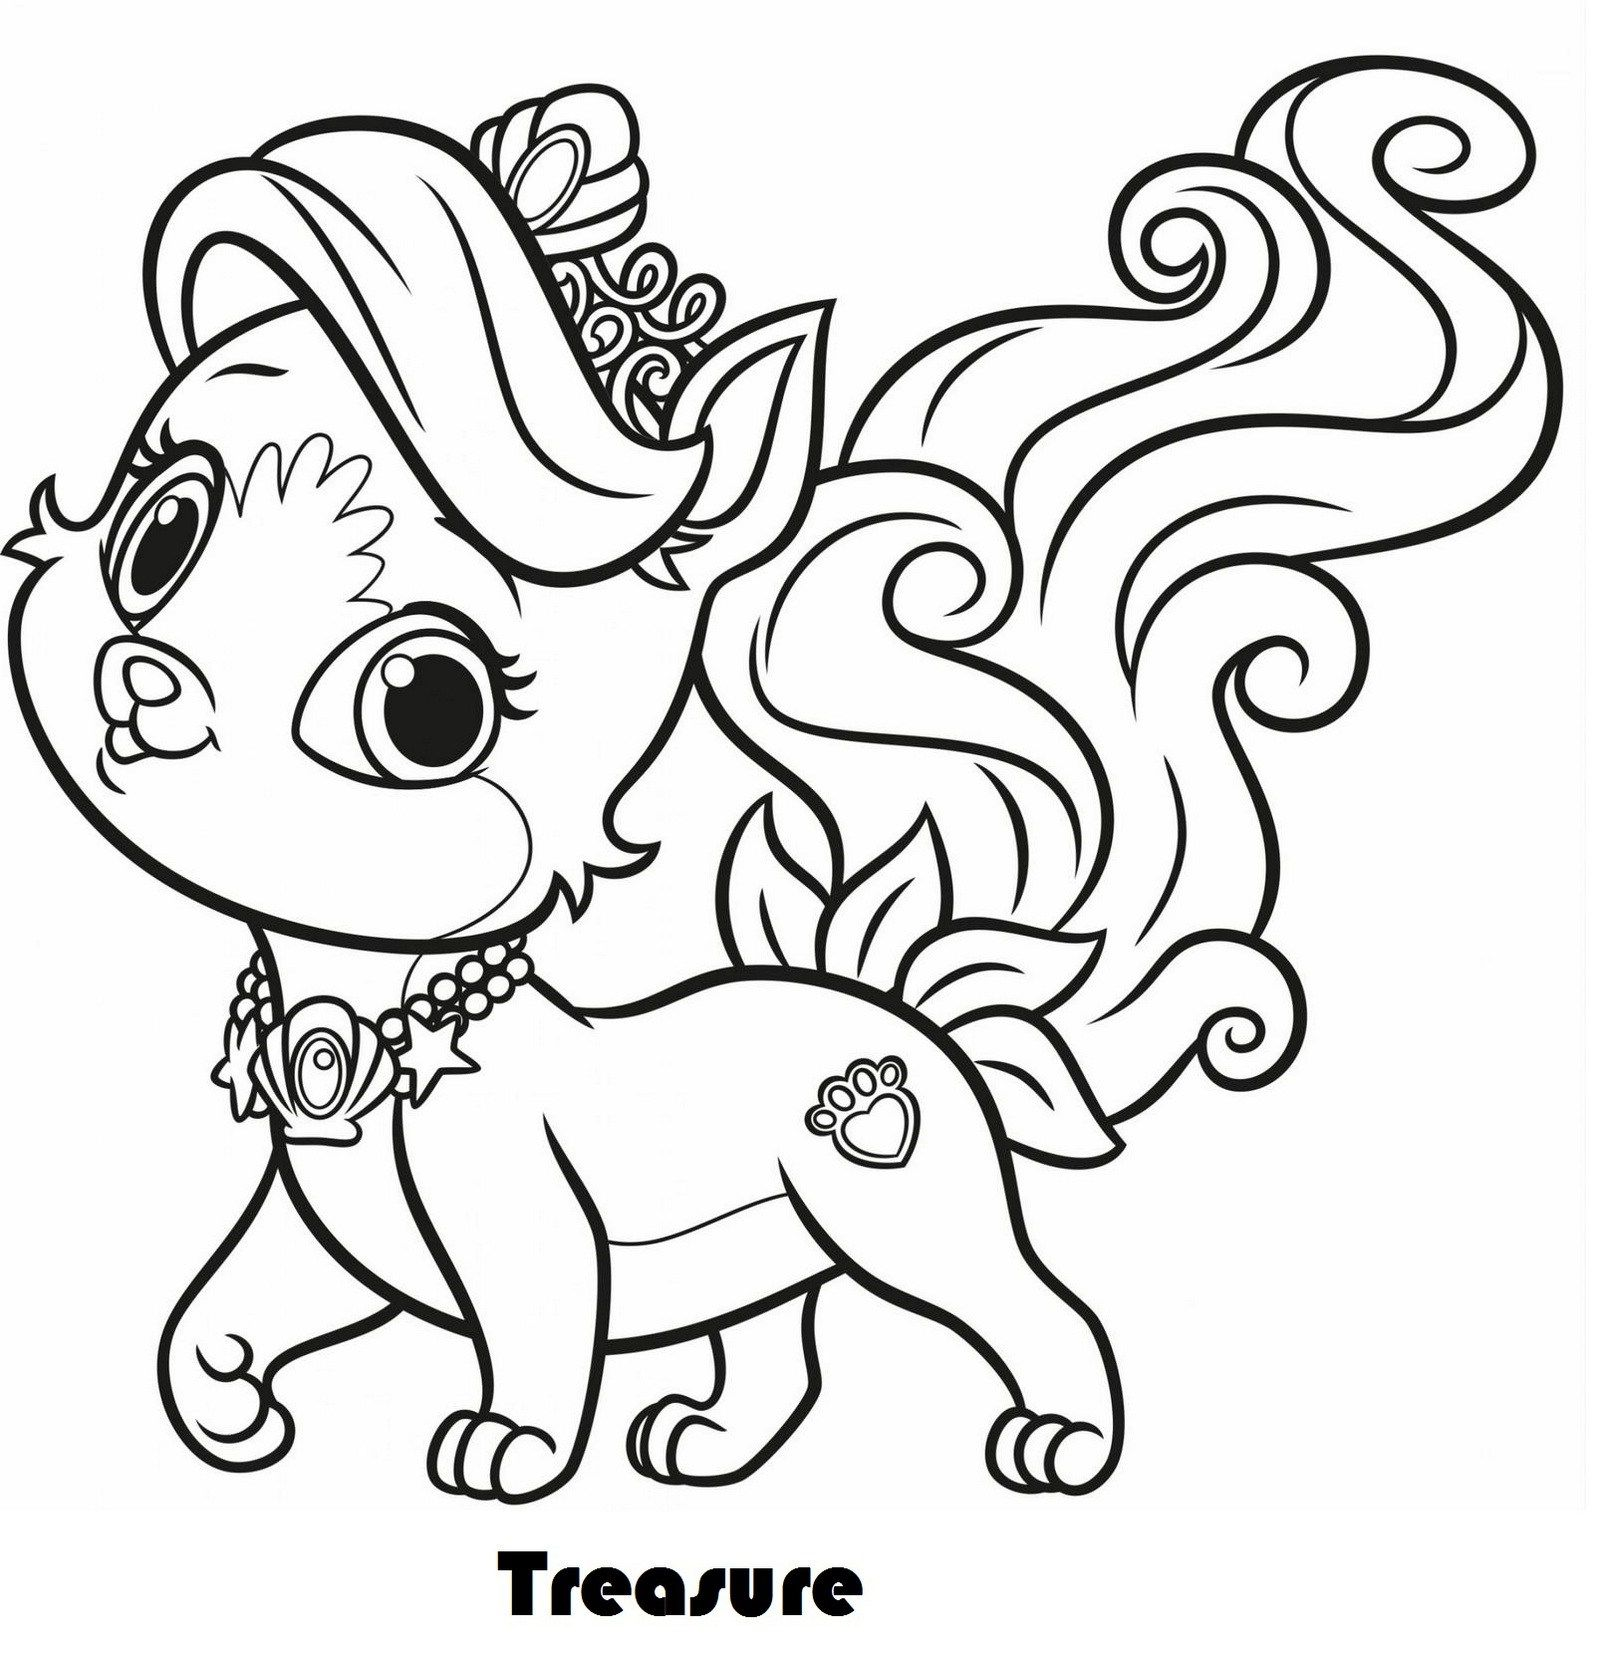 Treasure From Palace Pets Coloring Pages Puppy Coloring Pages Cat Coloring Page Animal Coloring Pages